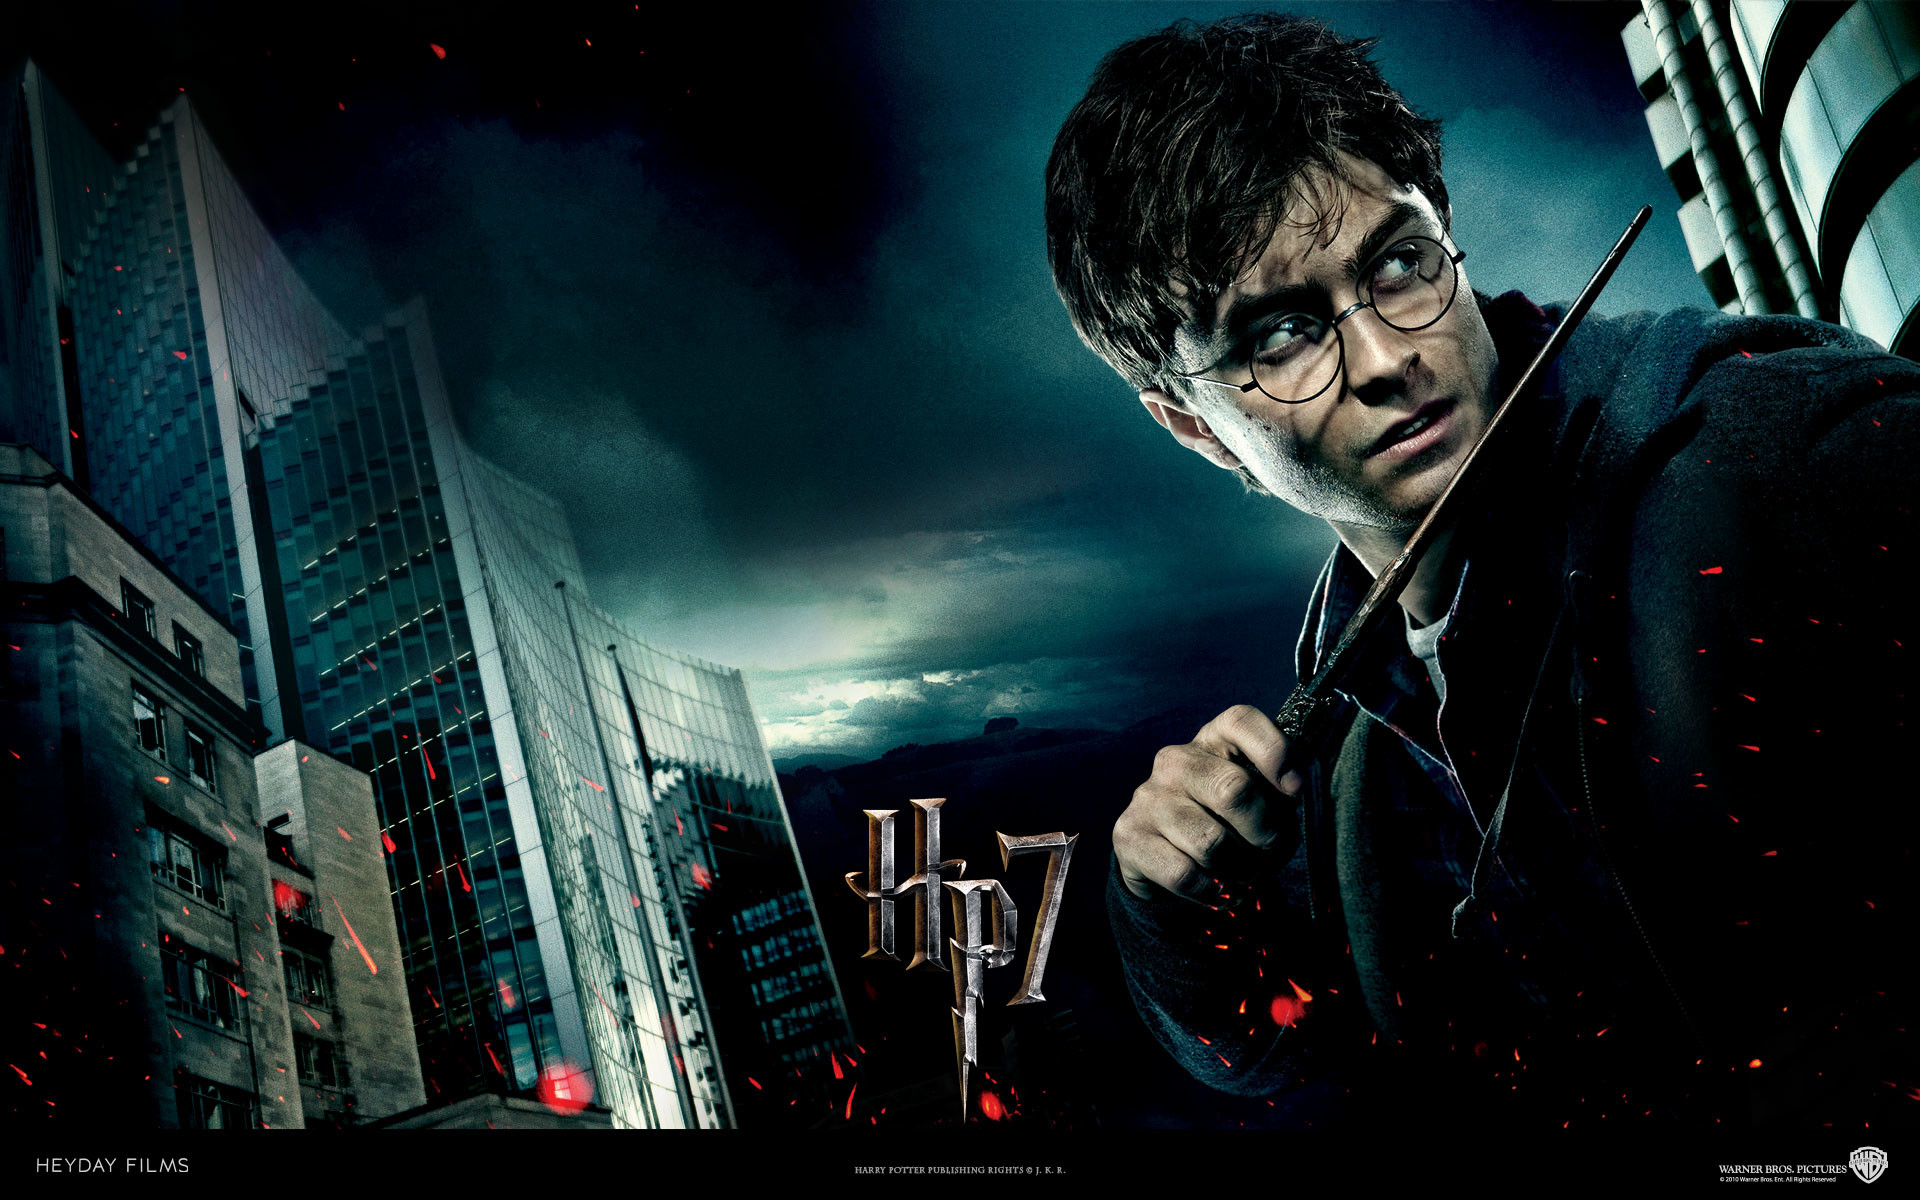 Harry Potter from Harry Potter and the Deathly Hallows movie wallpaper